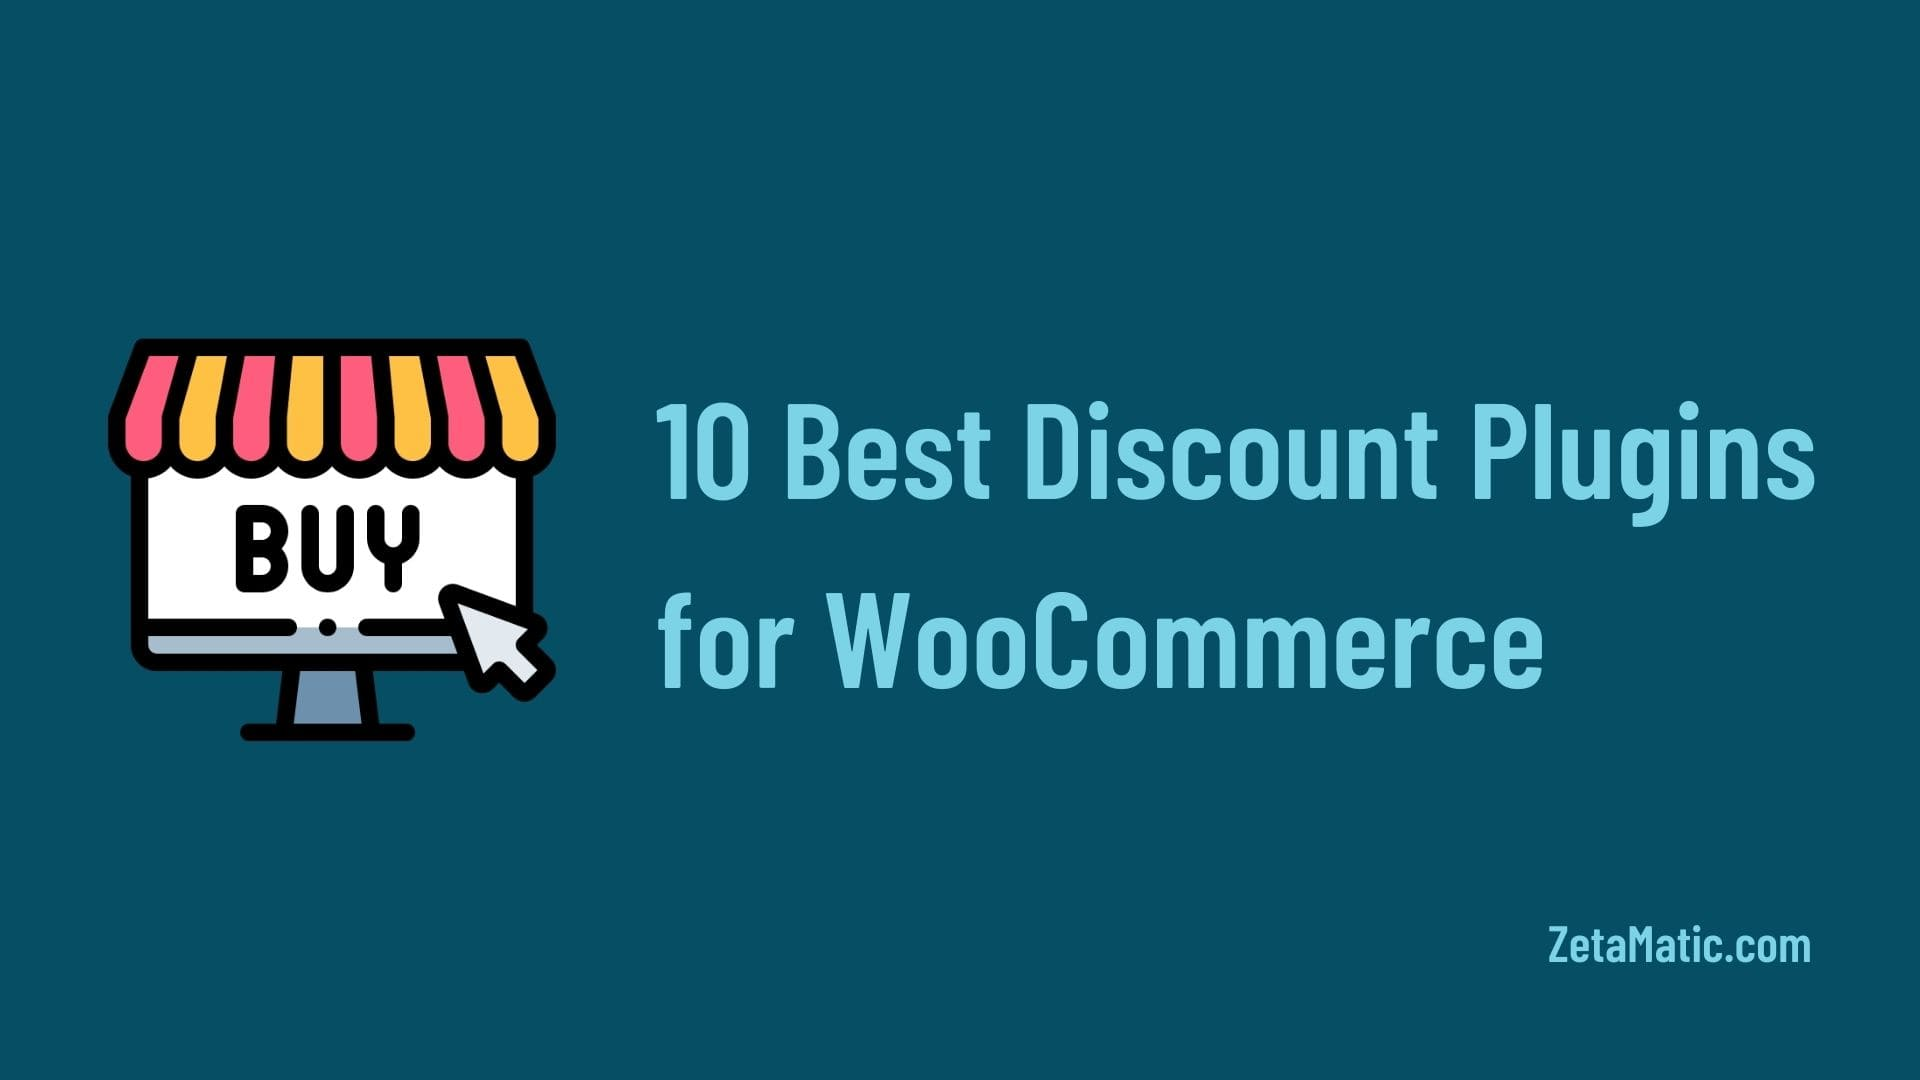 10 Best Discount Plugins for WooCommerce